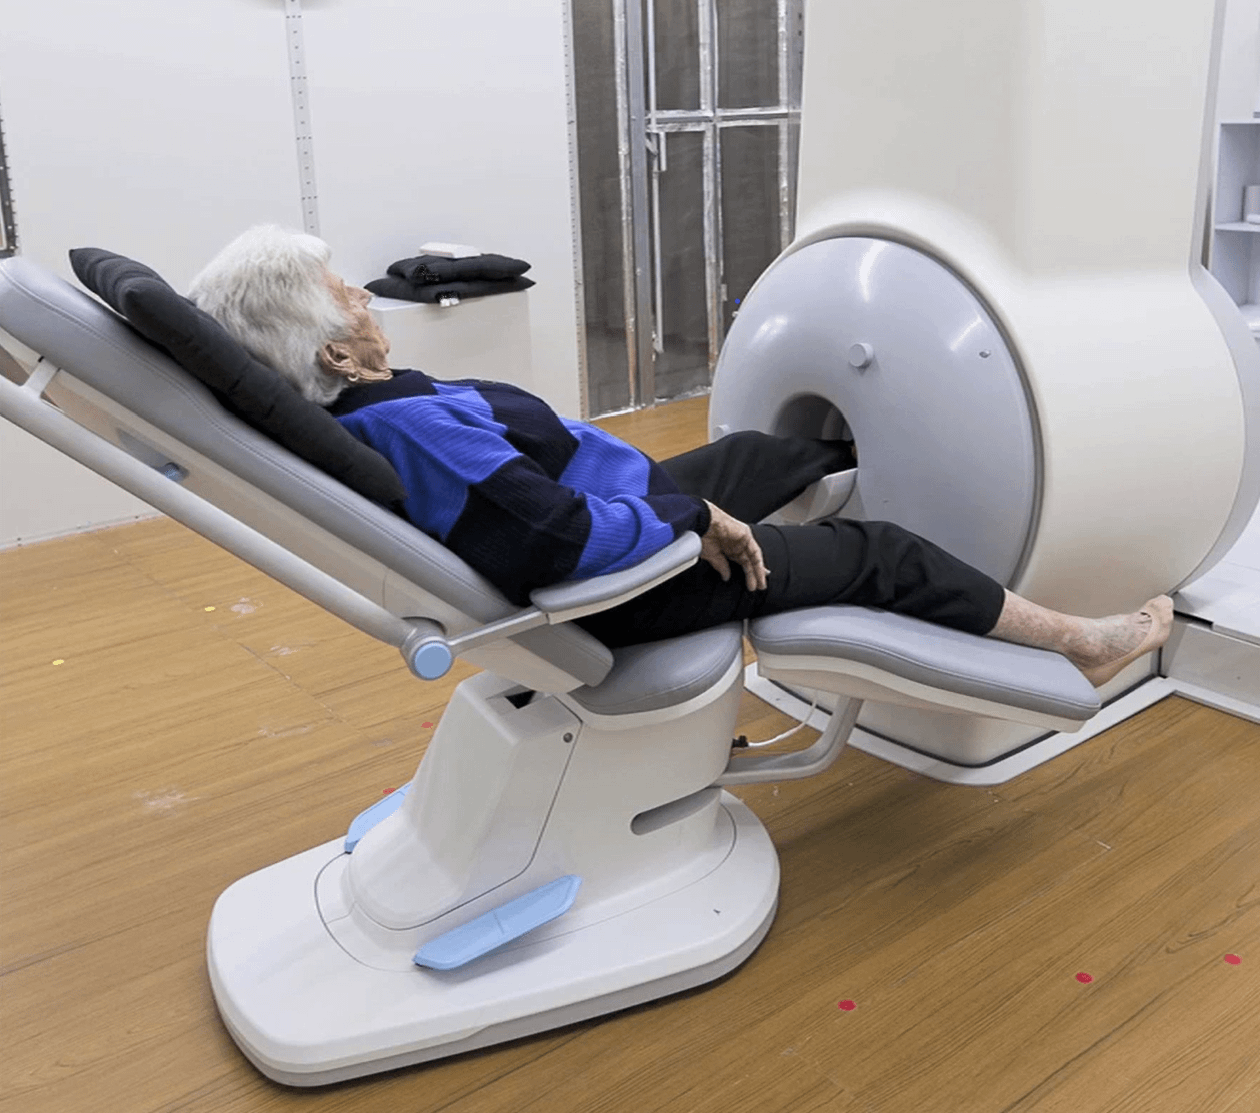 Compact MRI Systems for extremities - foot scan.